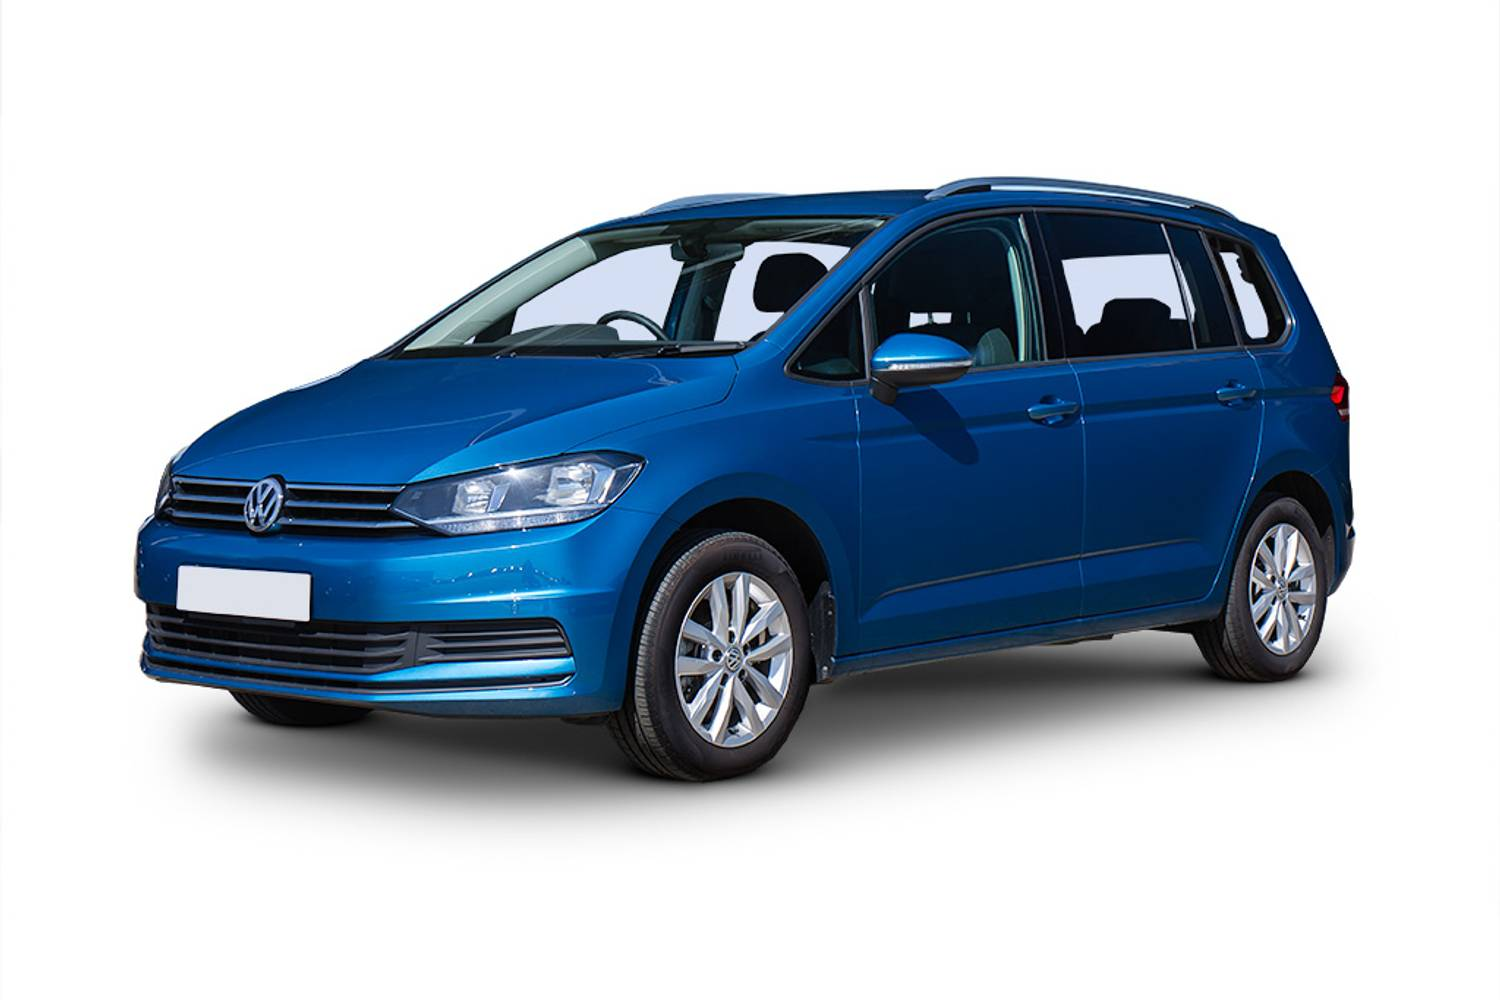 new volkswagen touran diesel estate 2 0 tdi 190 ps sel 5 door dsg 2015 for sale. Black Bedroom Furniture Sets. Home Design Ideas